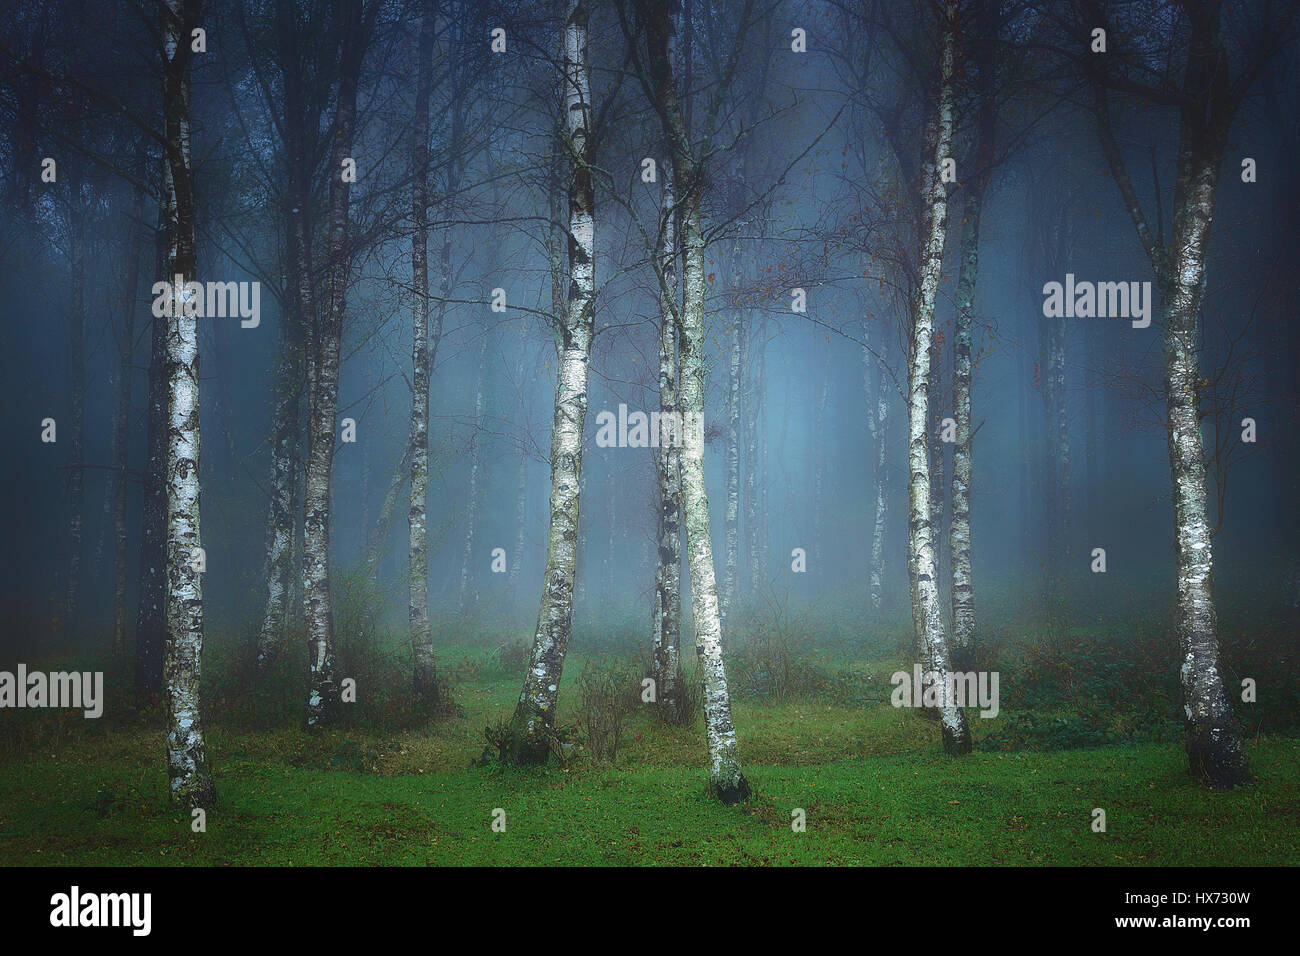 landscape of dark forest with fog - Stock Image